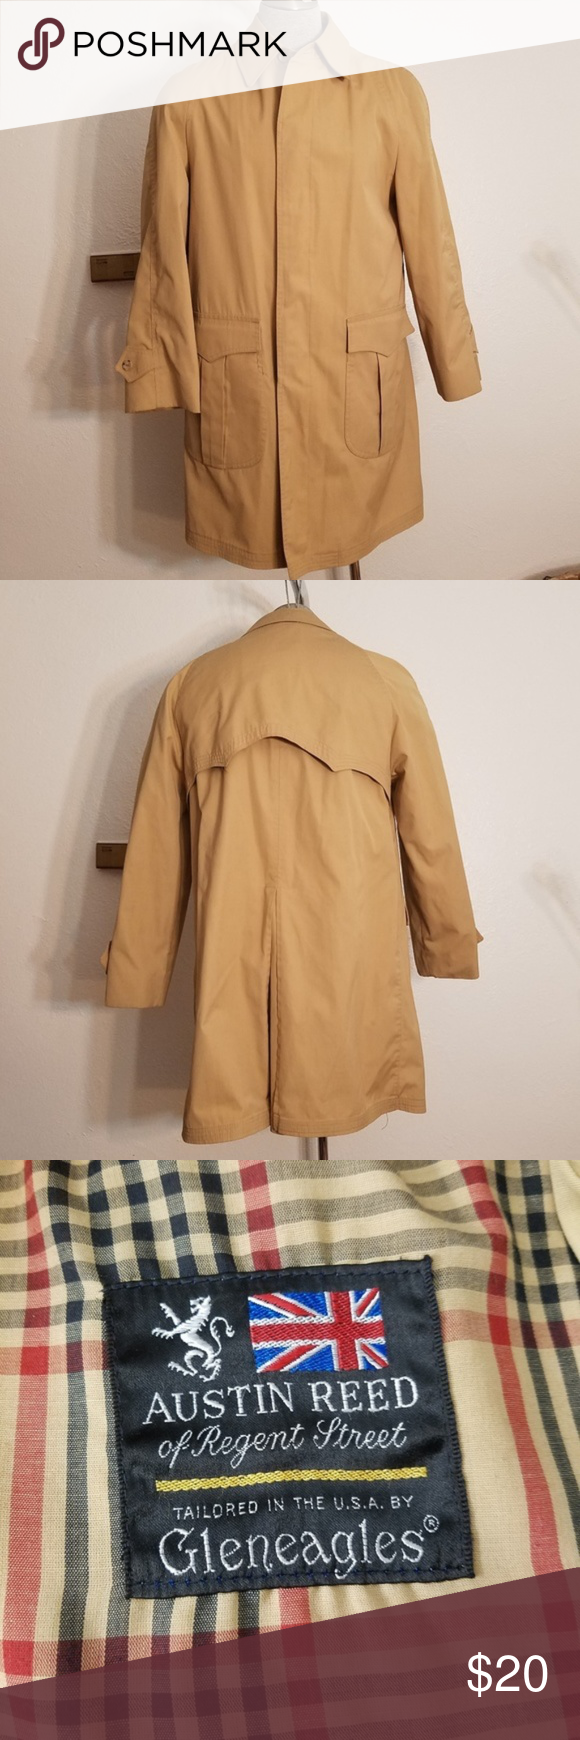 Austin Reed Men S Khaki Rain Coat Jacket Is Lined But Includes Zipper For An Additional Lining Which Is Not Present Chest 24 Raincoat Mens Khakis Austin Reed